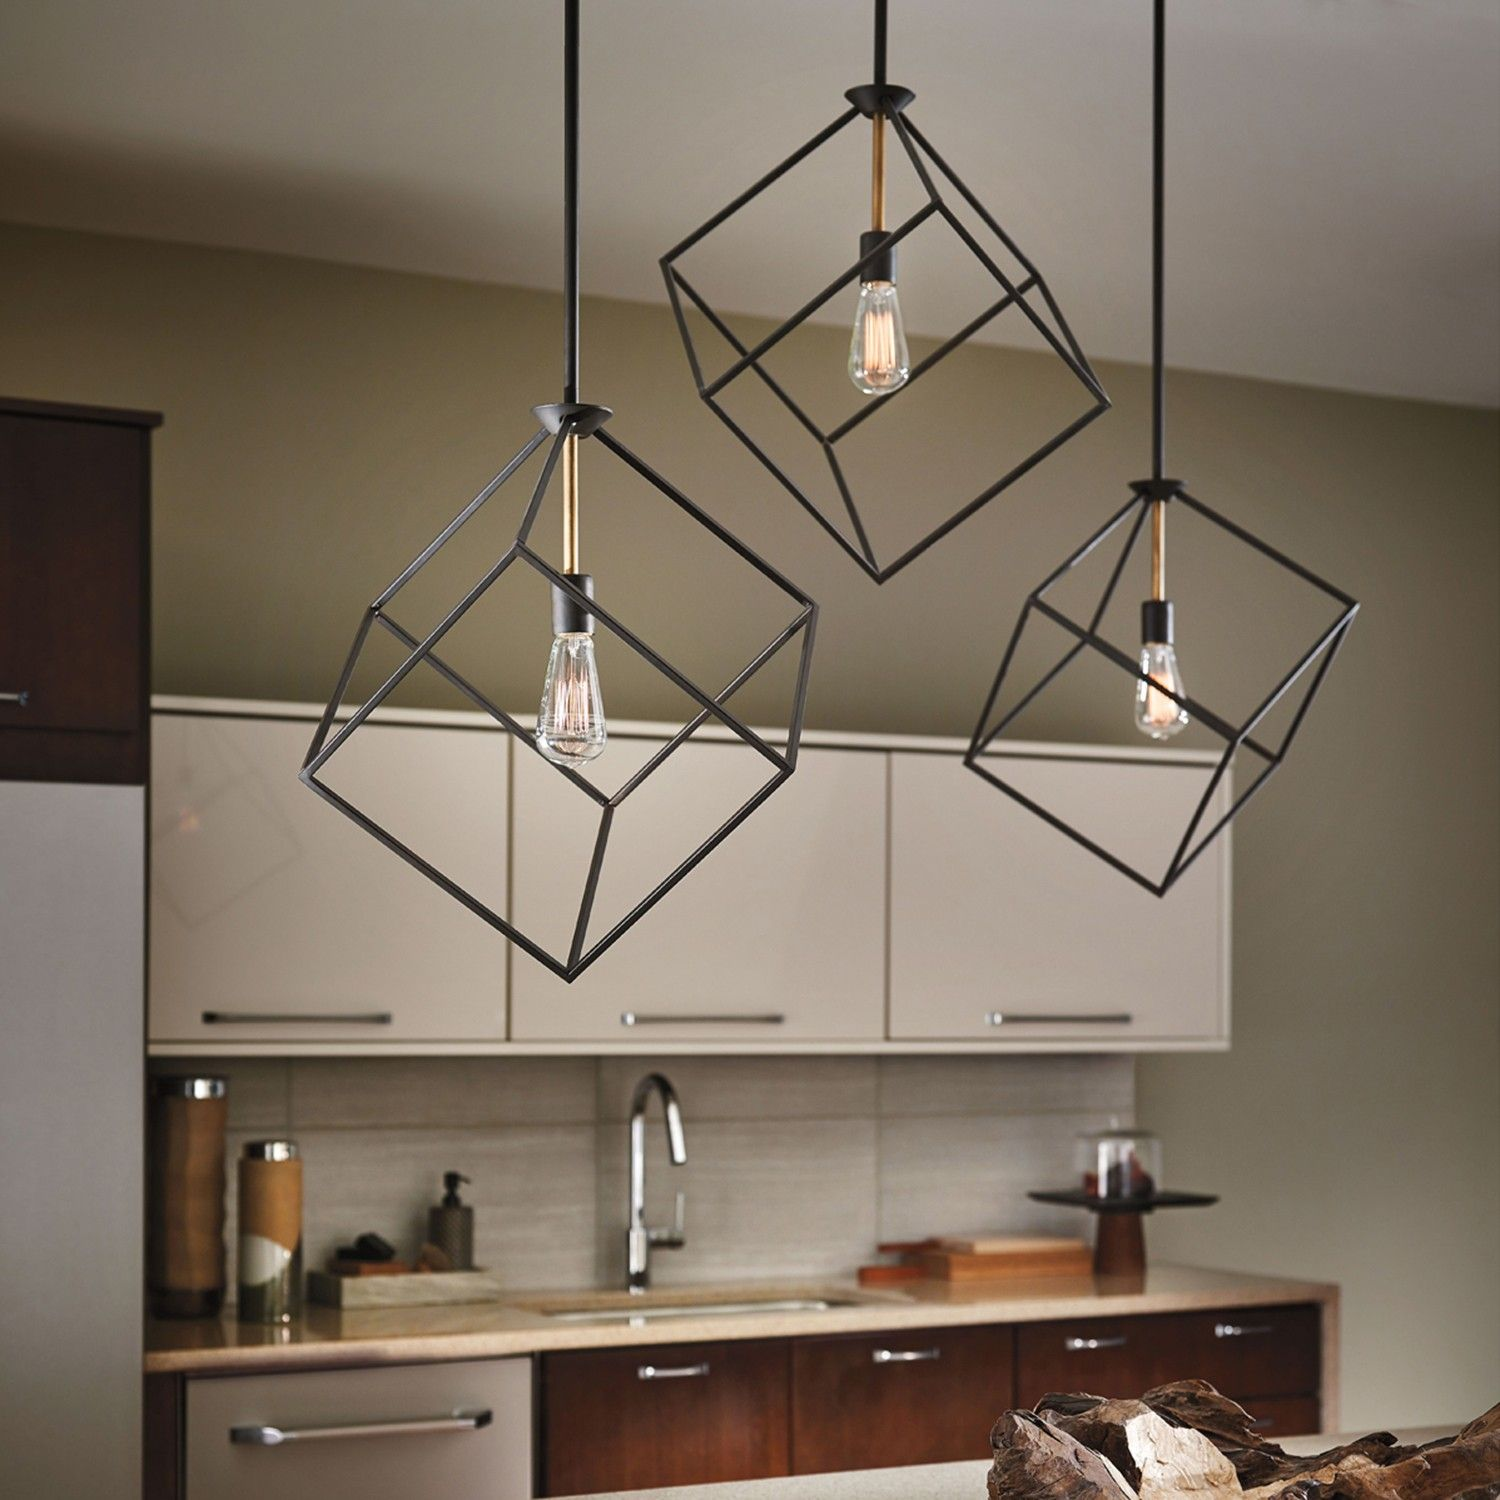 Introducing The New Modern Home: Introducing: Kichler Modern Lighting